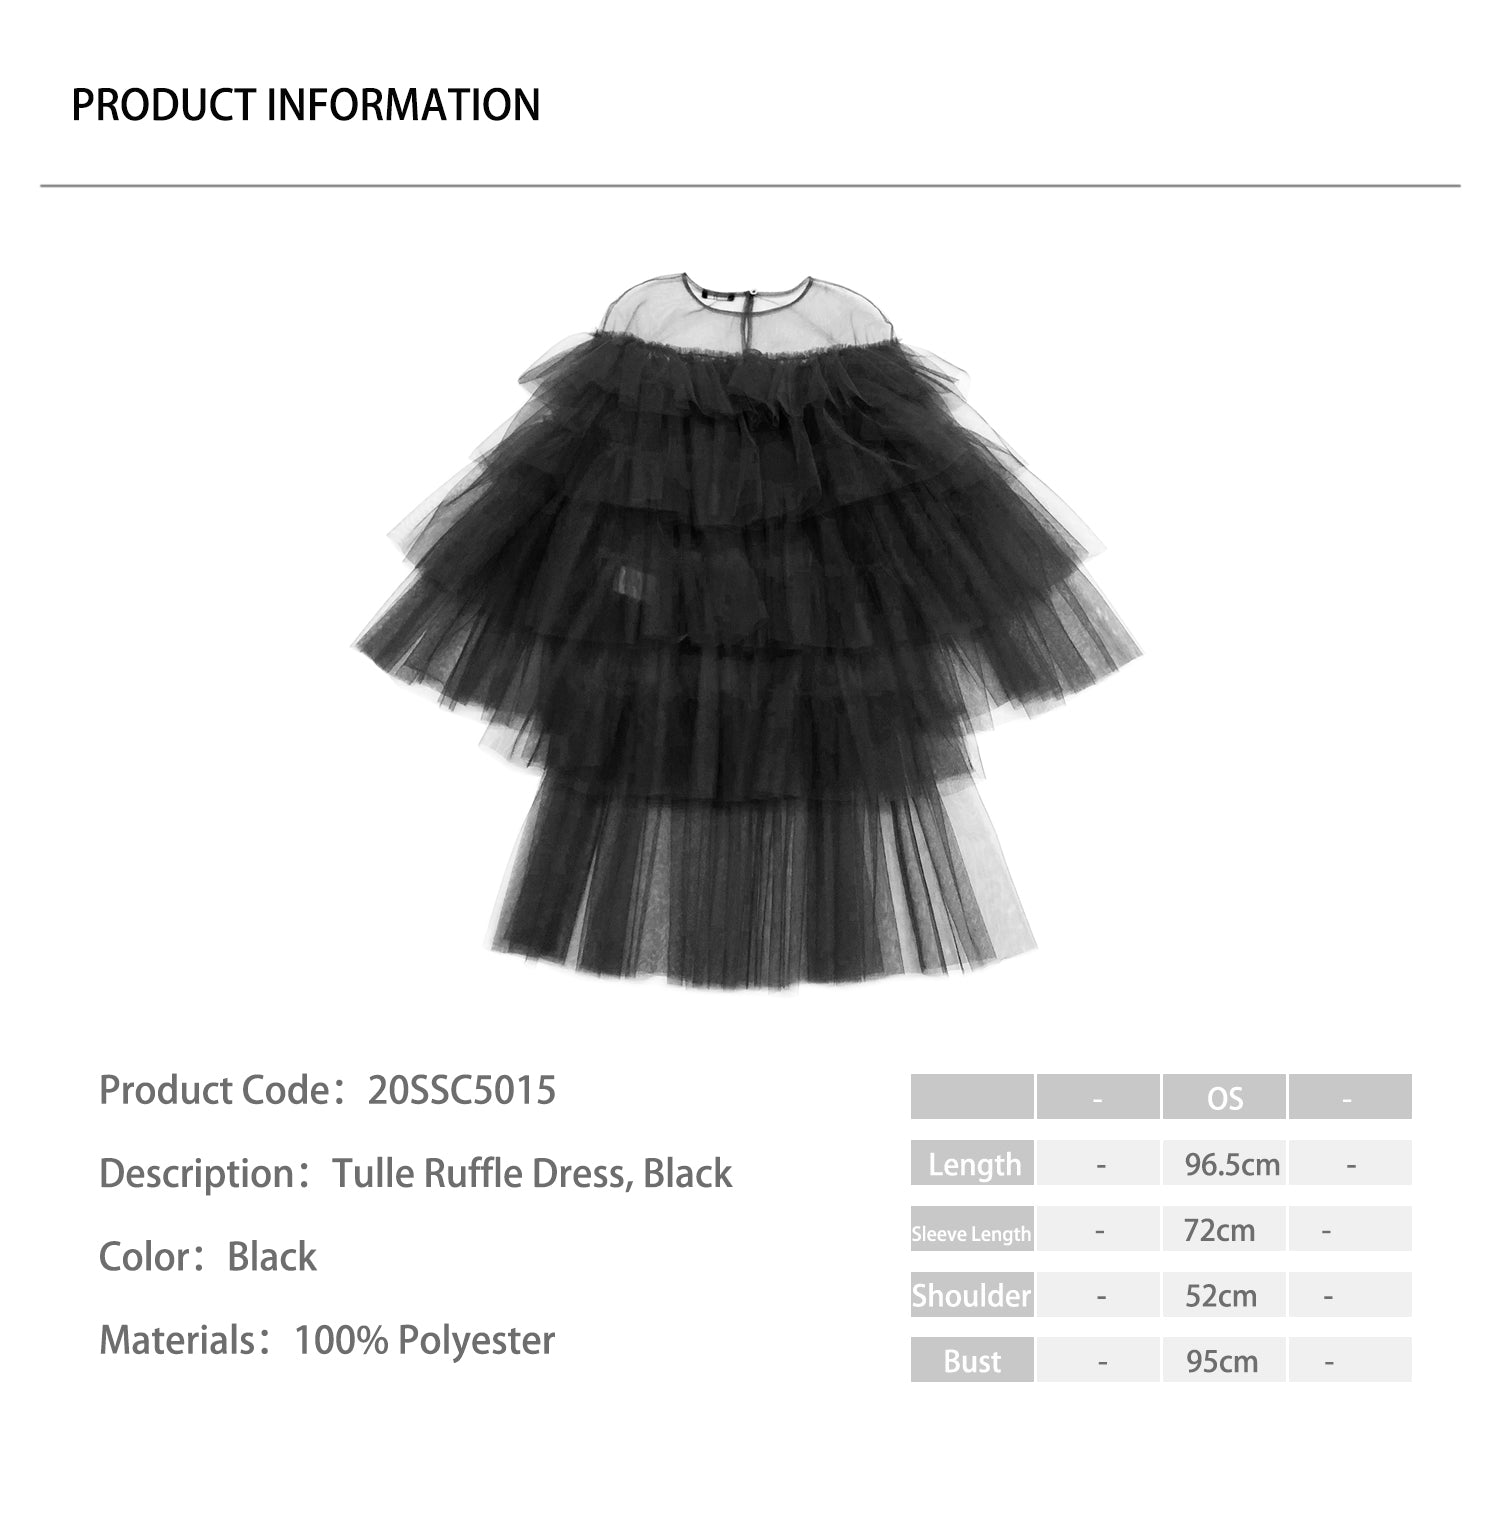 Tulle Ruffle Dress, Black